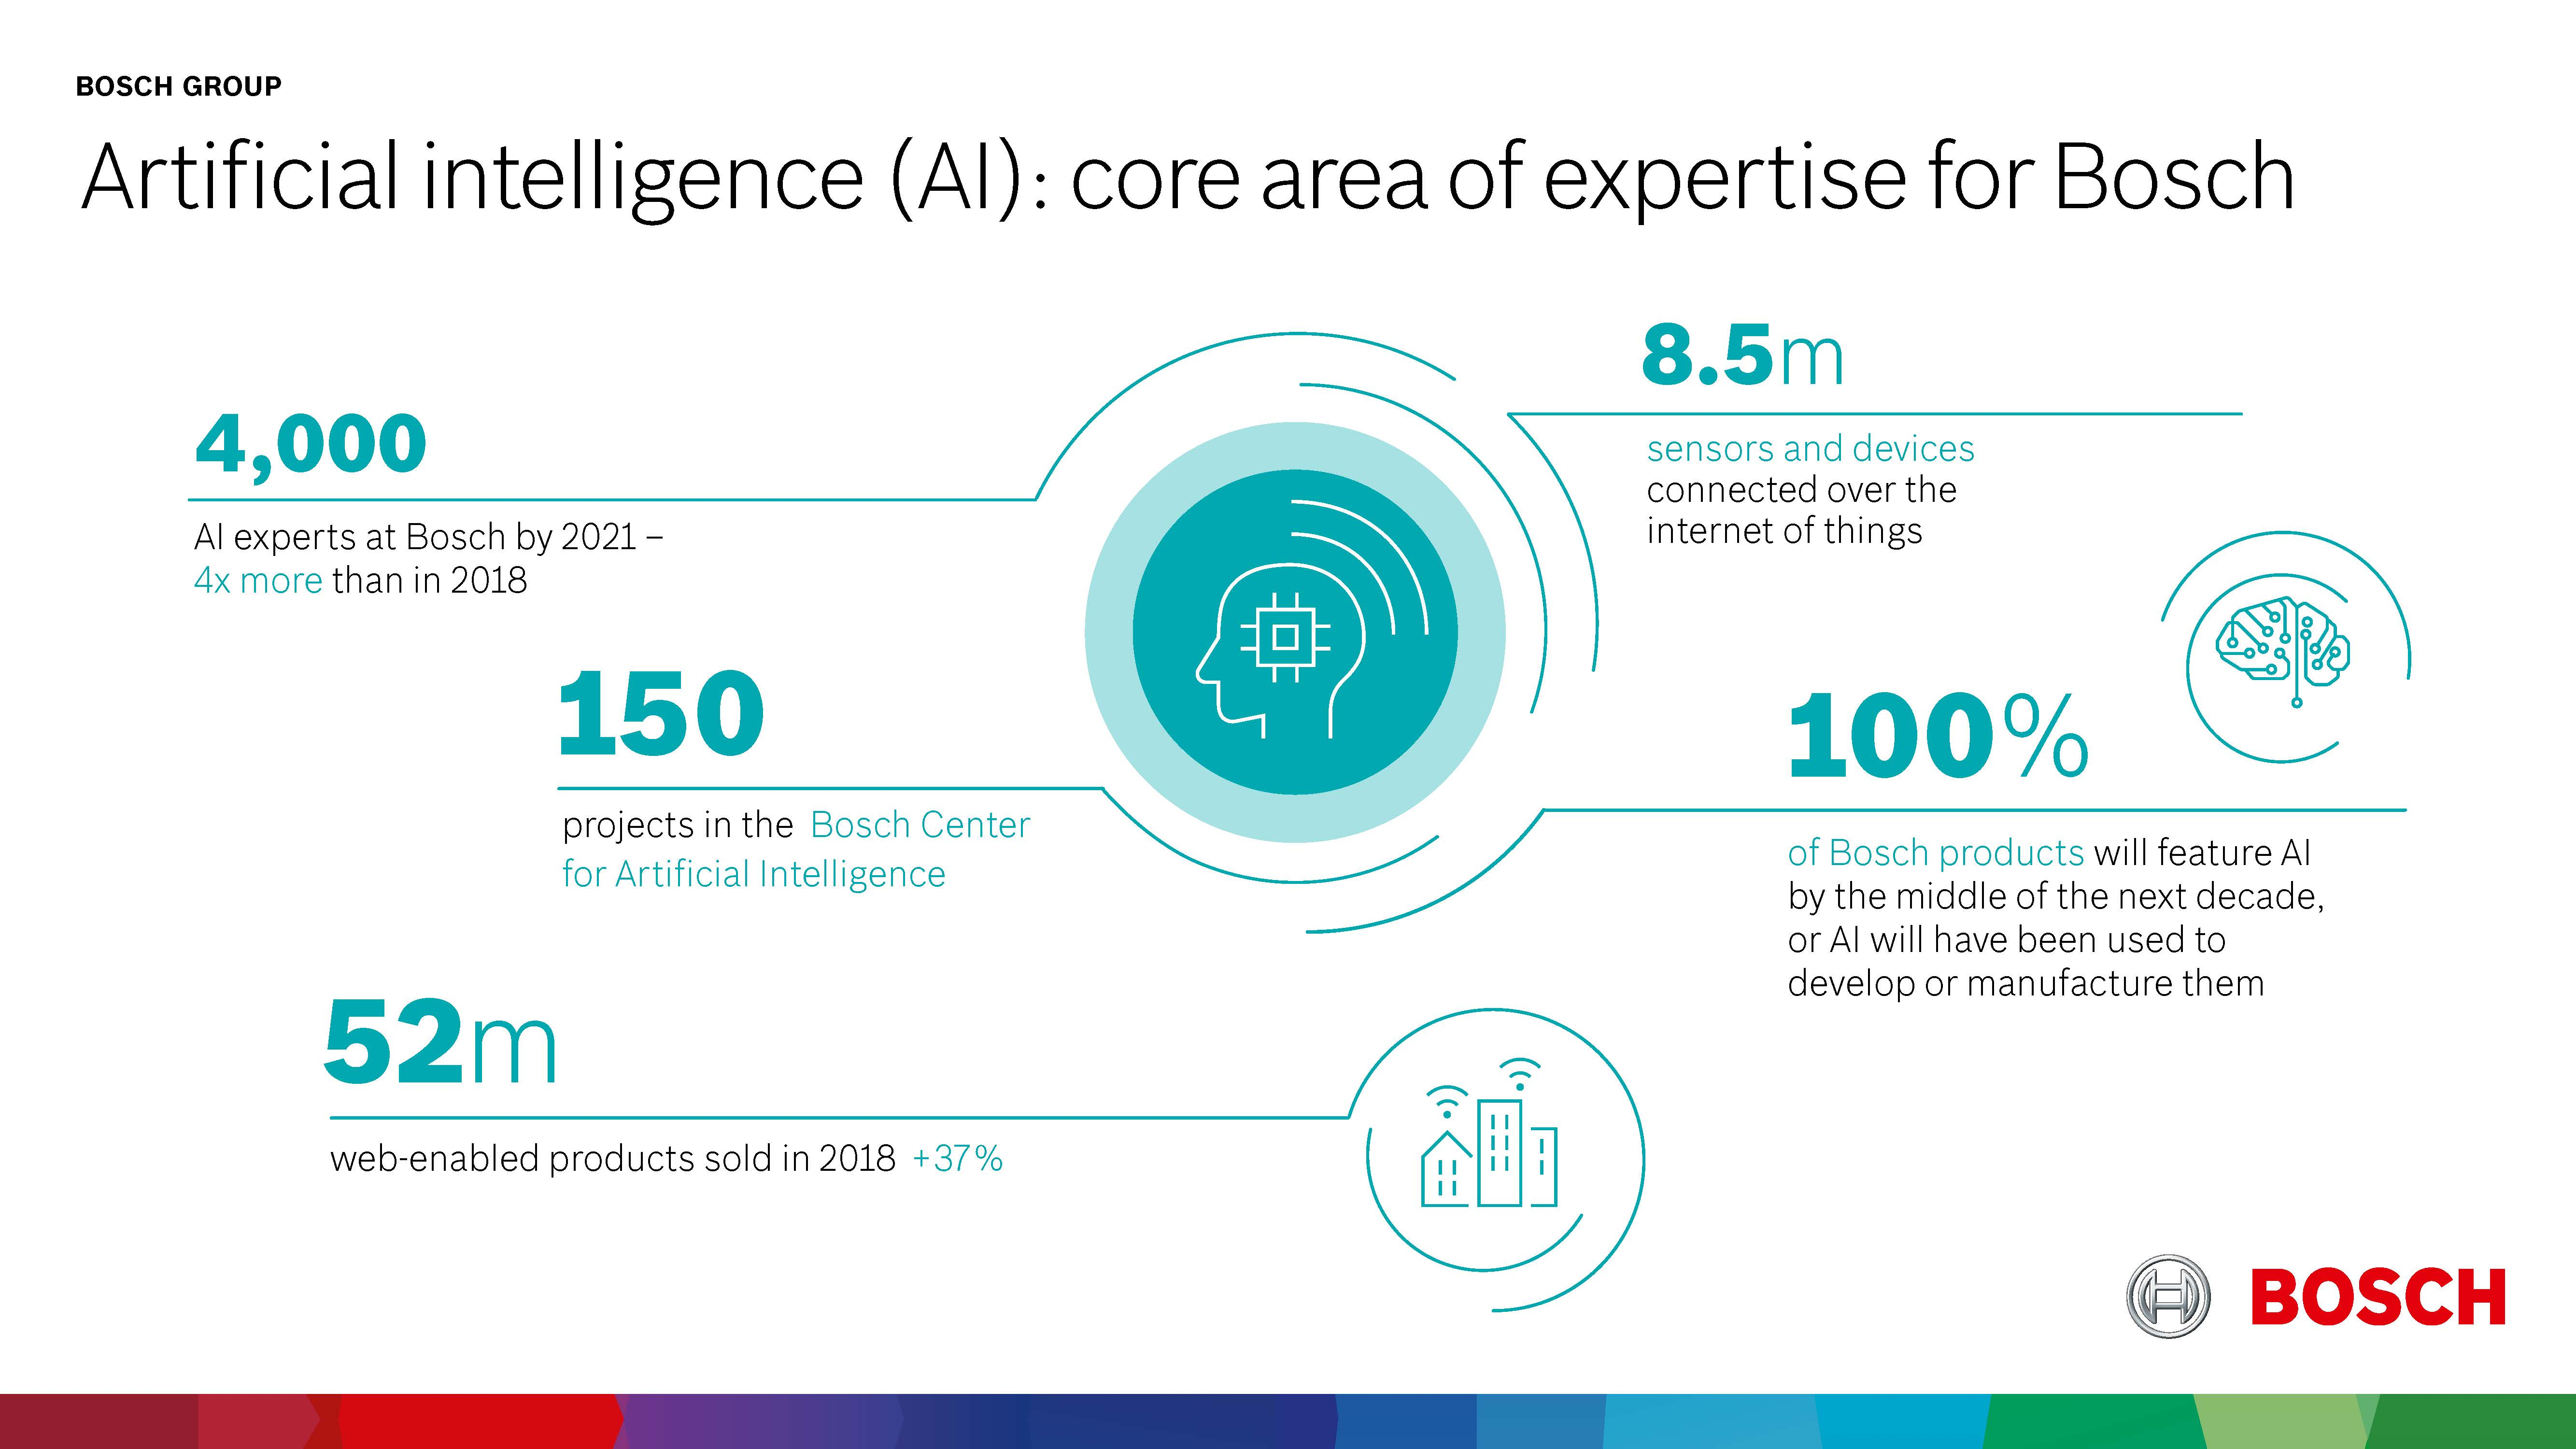 Artificial intelligence (AI) as key technology for the IoT